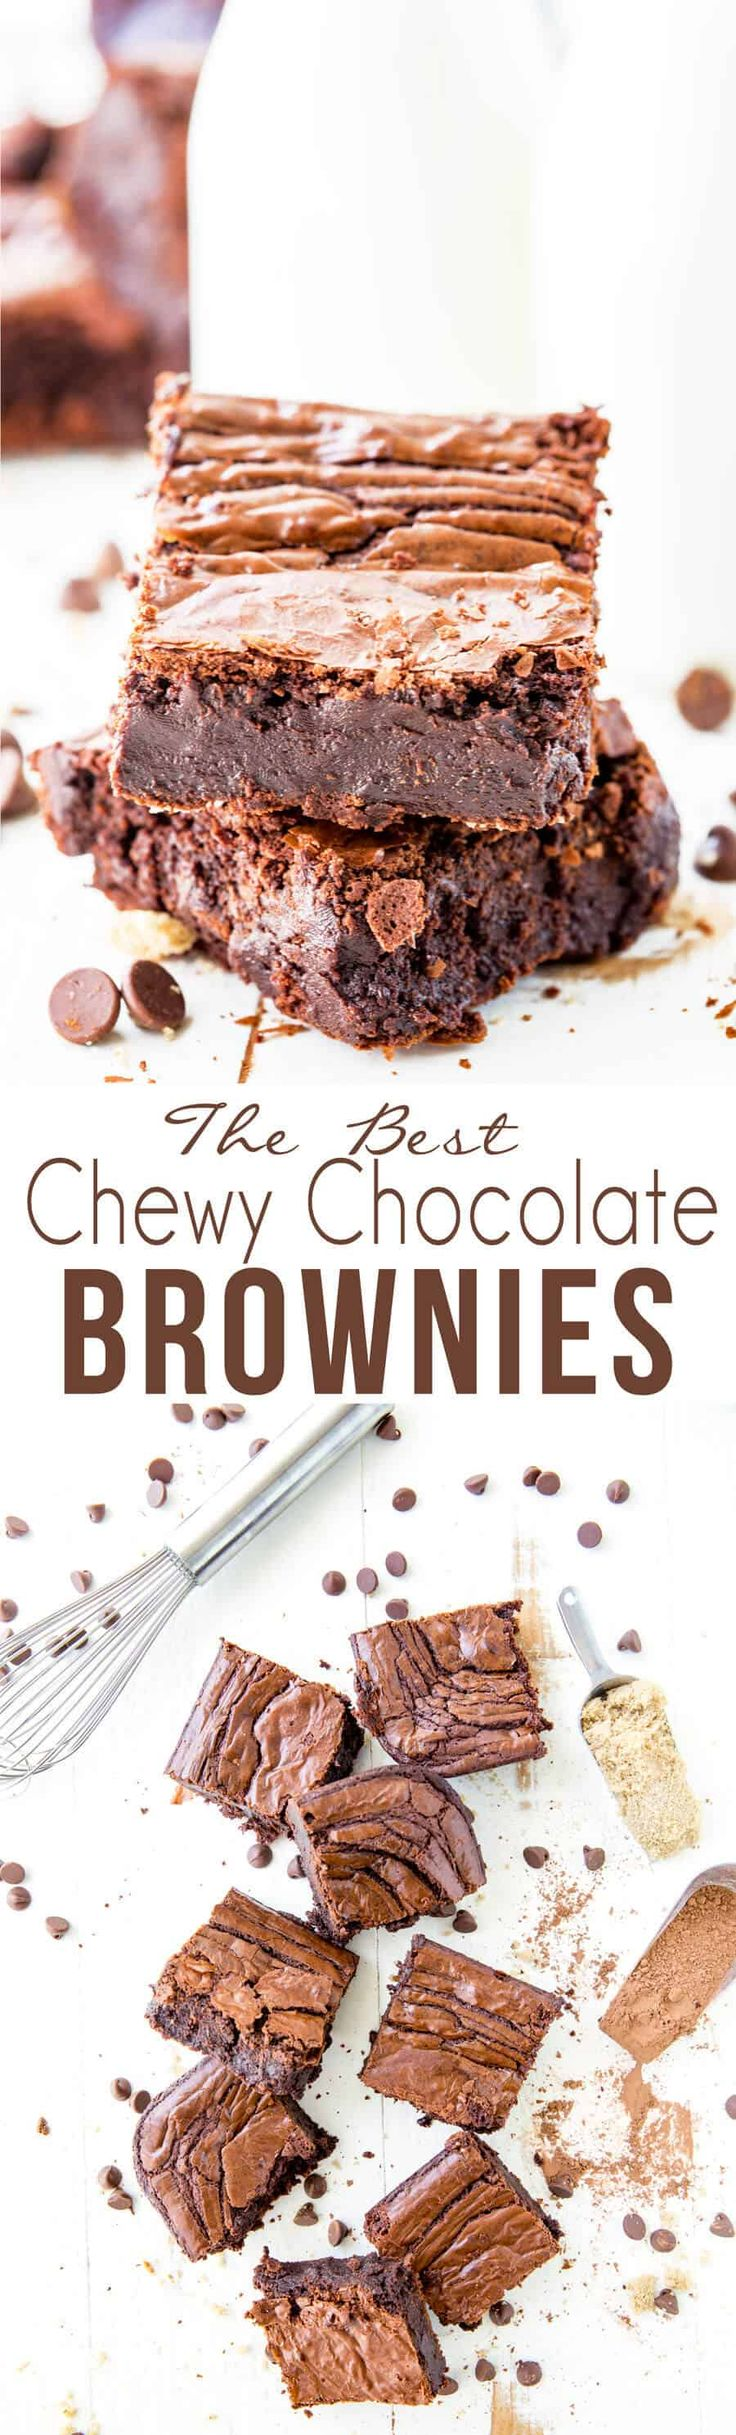 The best chewy chocolate brownies, fudgy middle, crispy top!